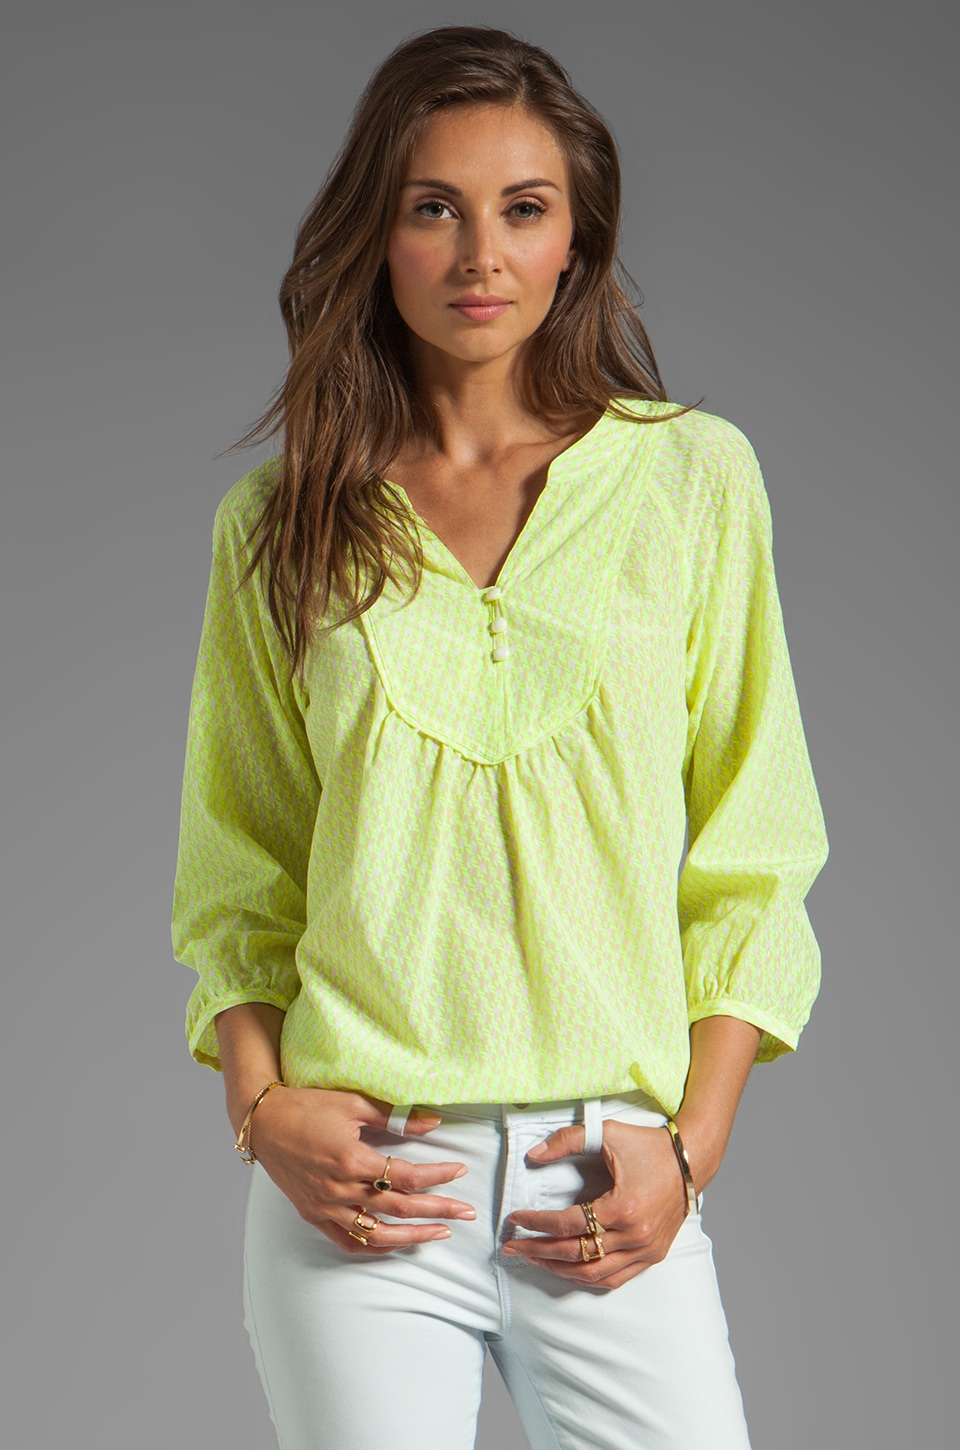 Shoshanna Mona Blouse in Neon Yellow Multi